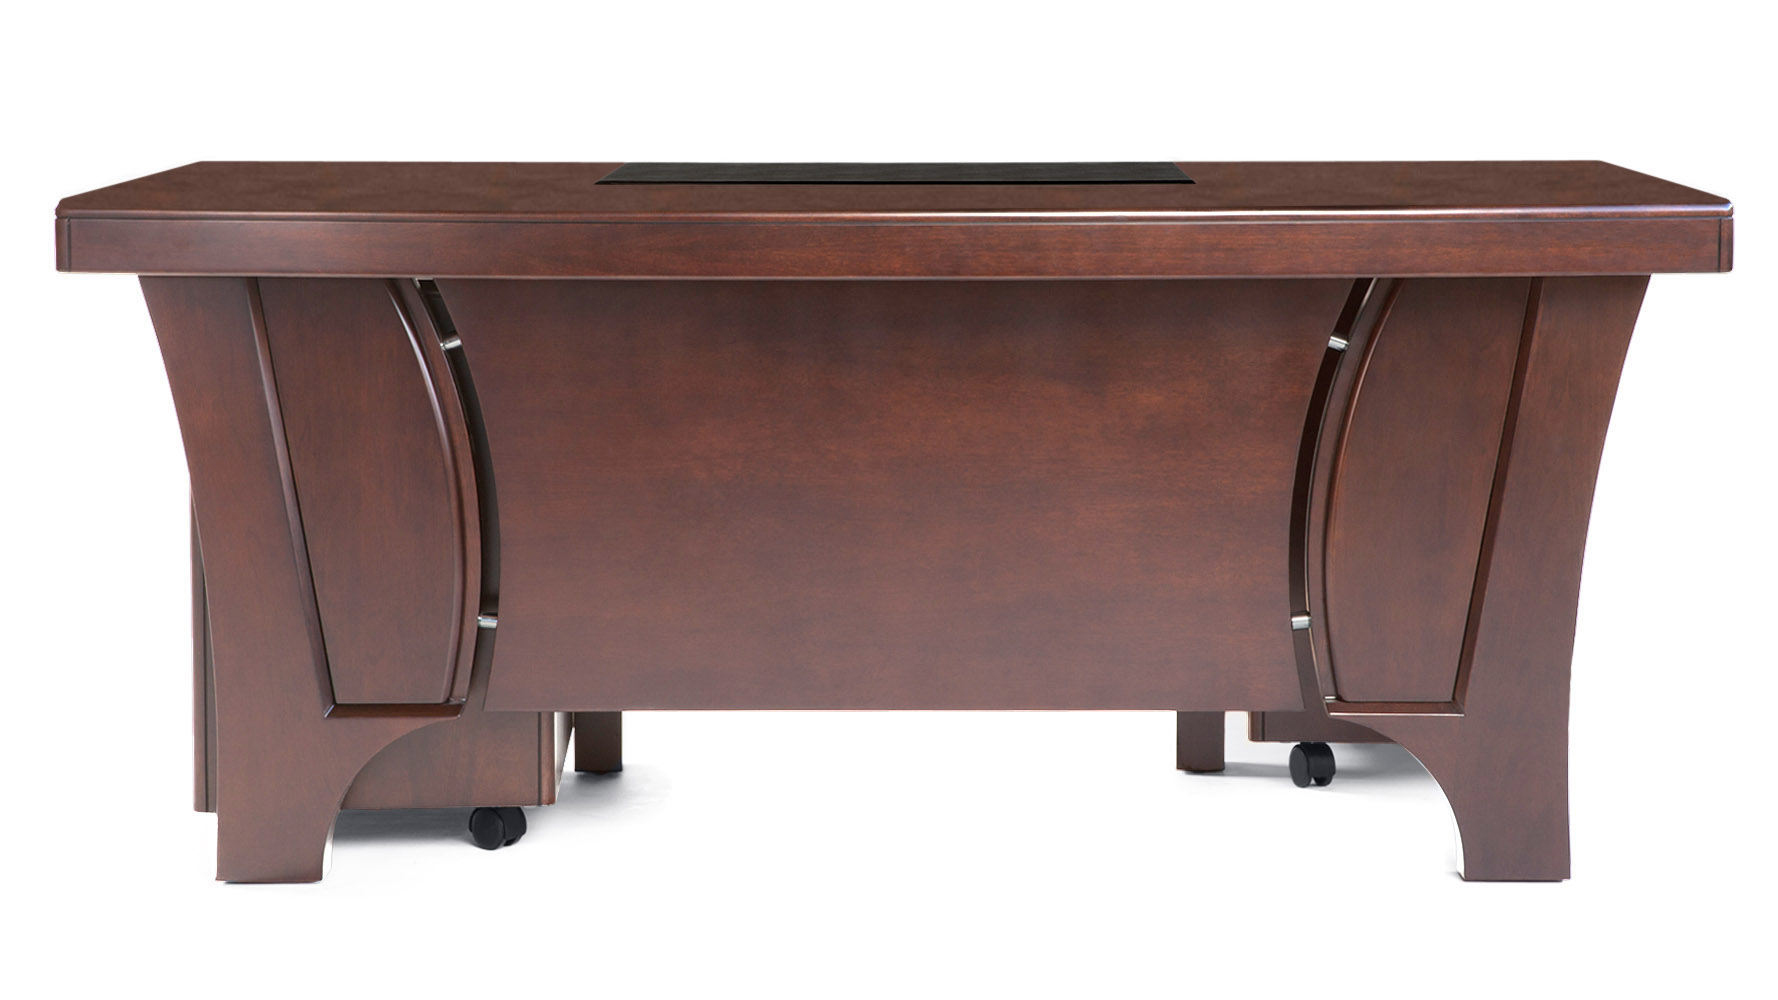 light quincy modern wood desk with rolling return and file cabinet  - mouse over image to zoom or click to view larger